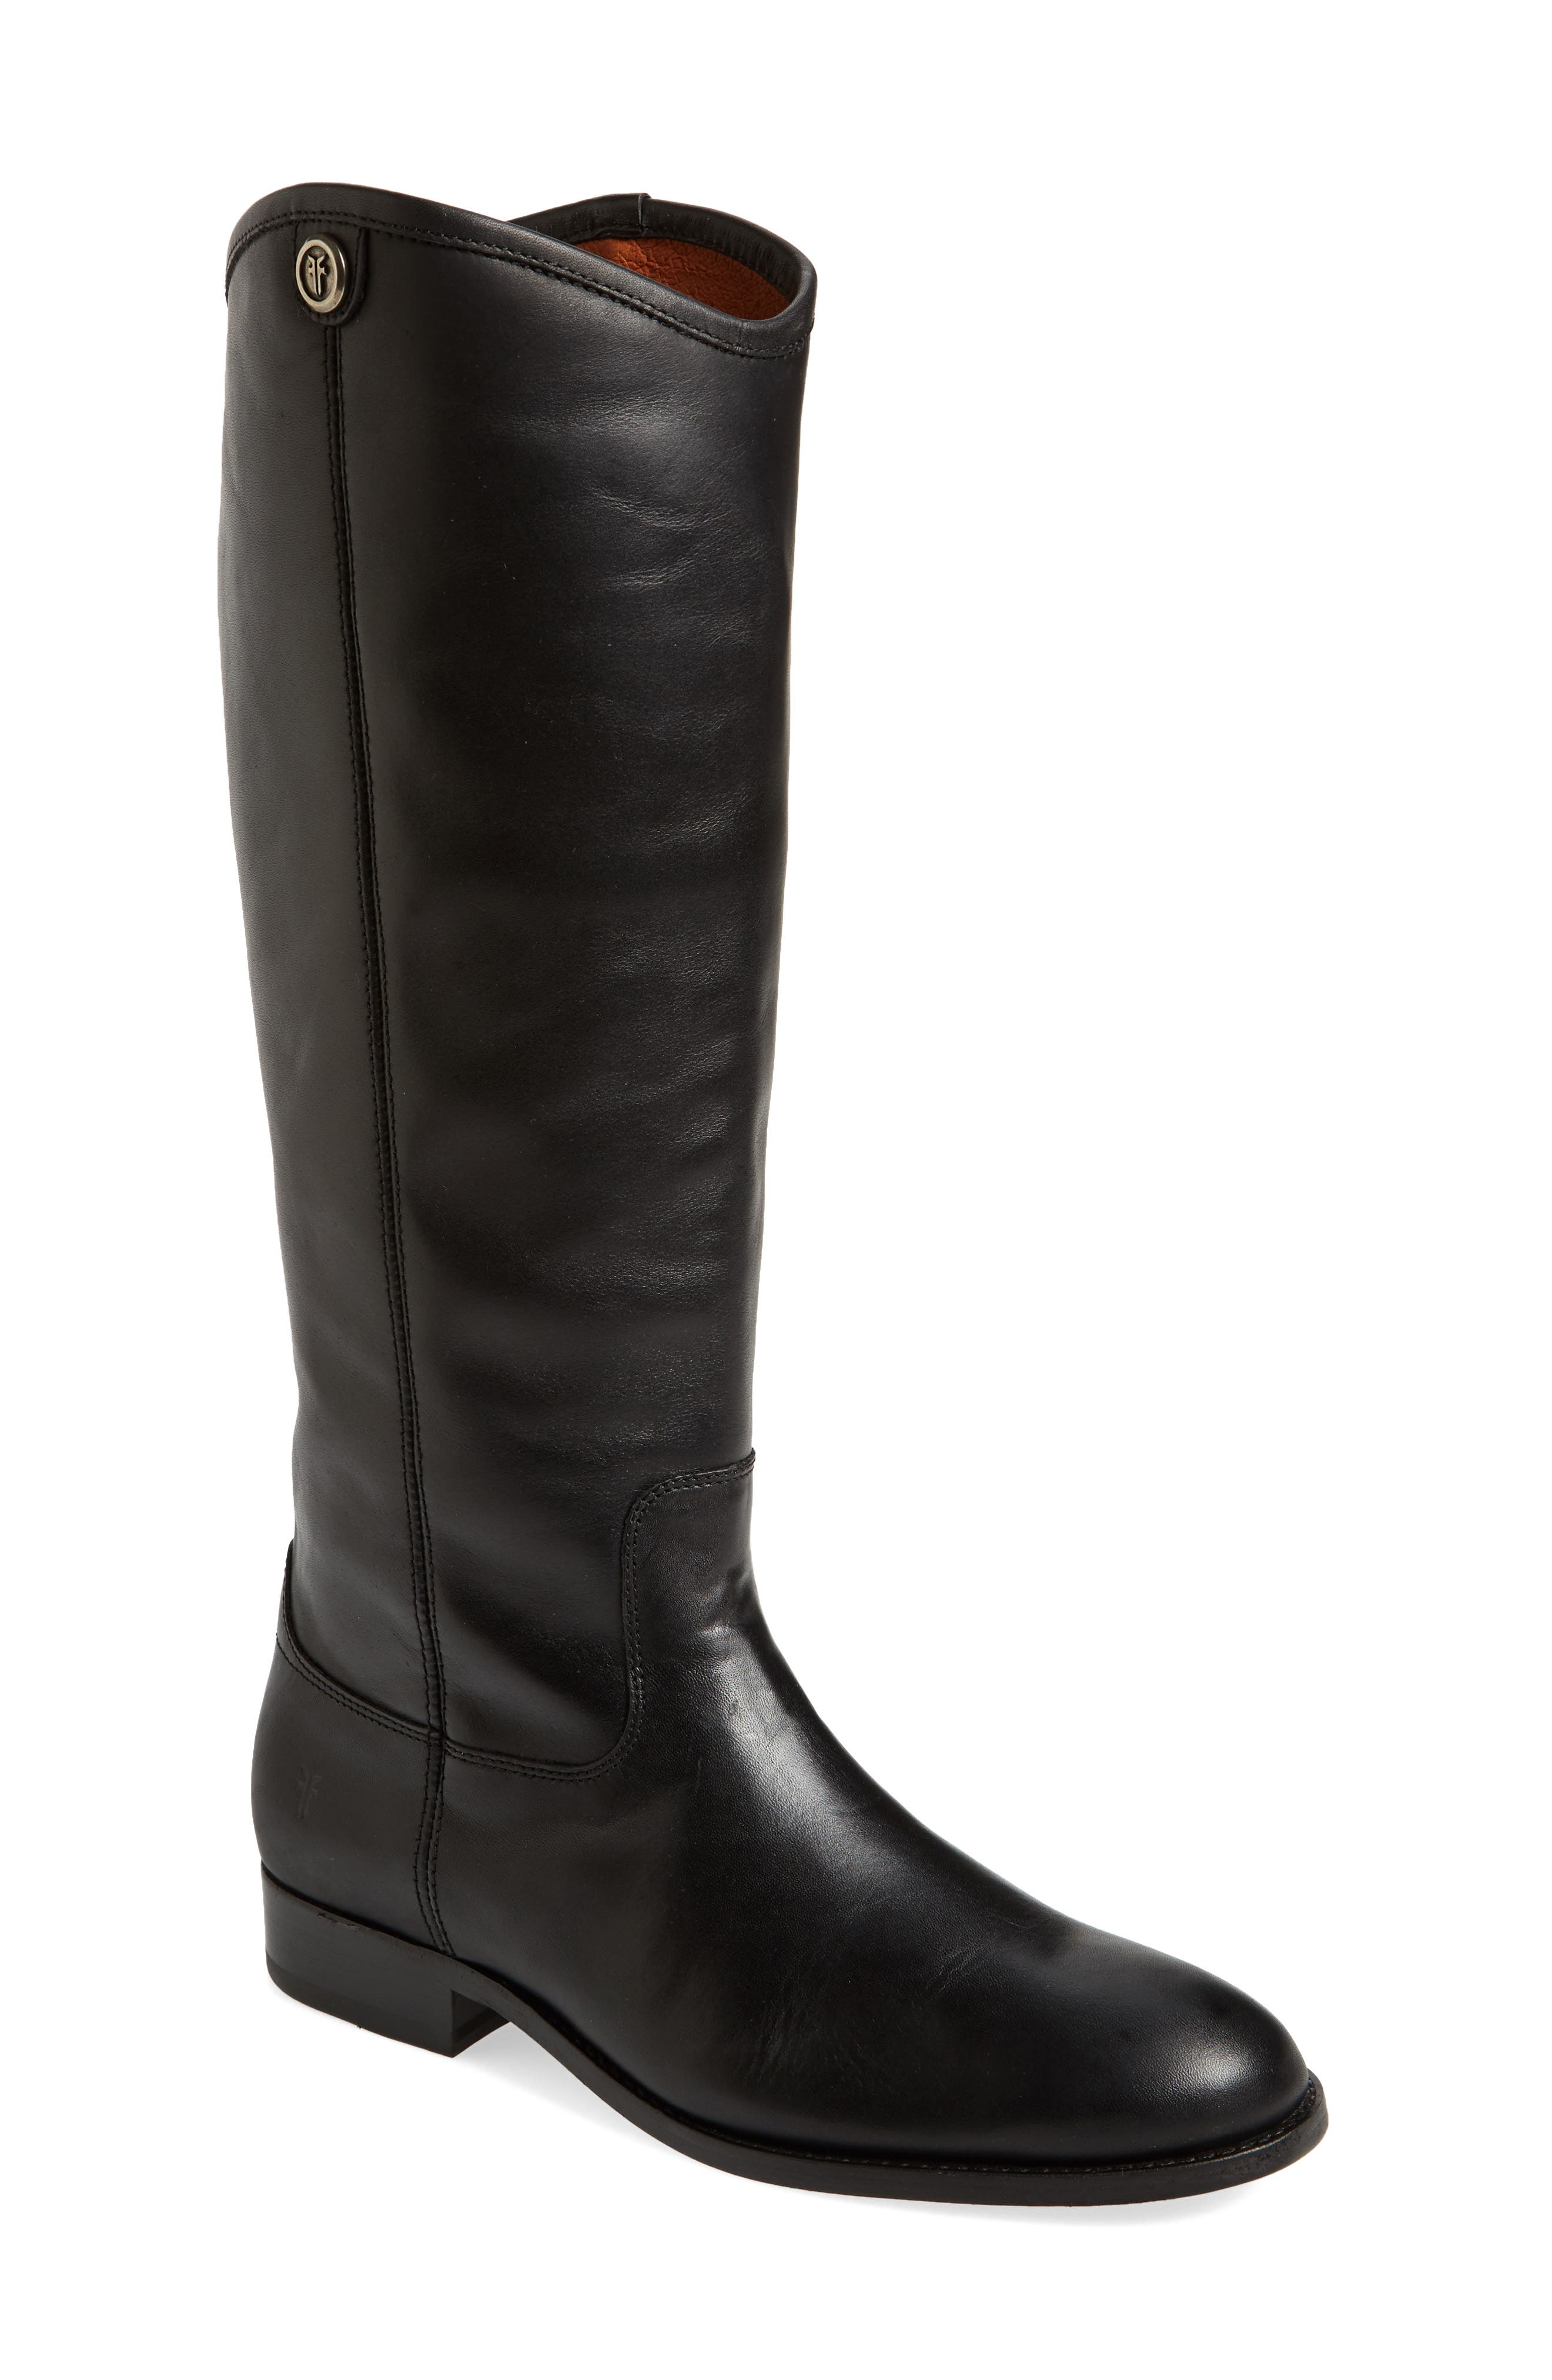 Melissa Button 2 Knee High Boot,                             Main thumbnail 1, color,                             Black Leather